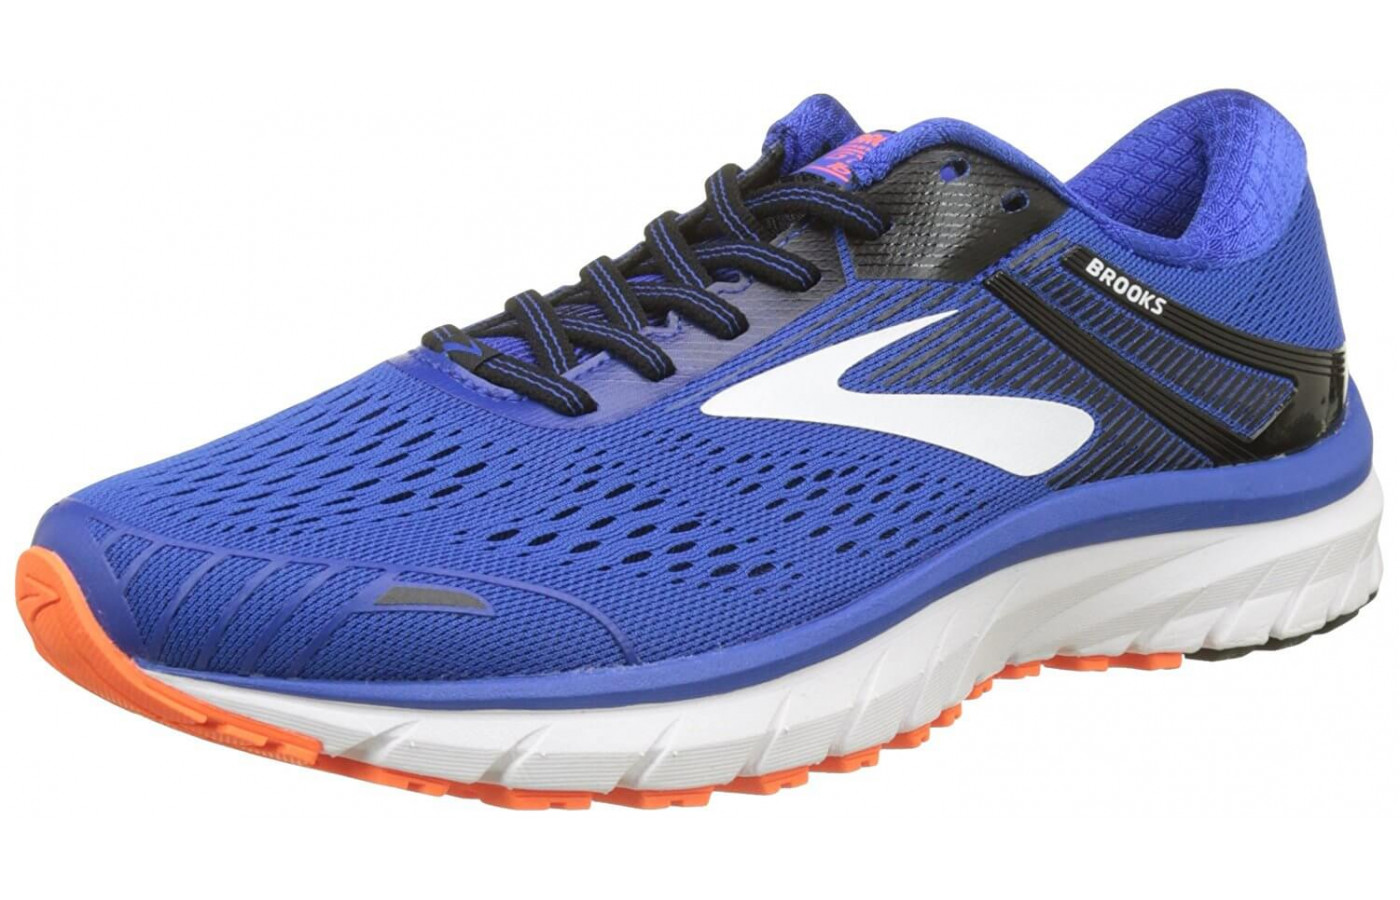 de00da559a5 Brooks Adrenaline GTS 18. Runners can choose from 20 different color  options.